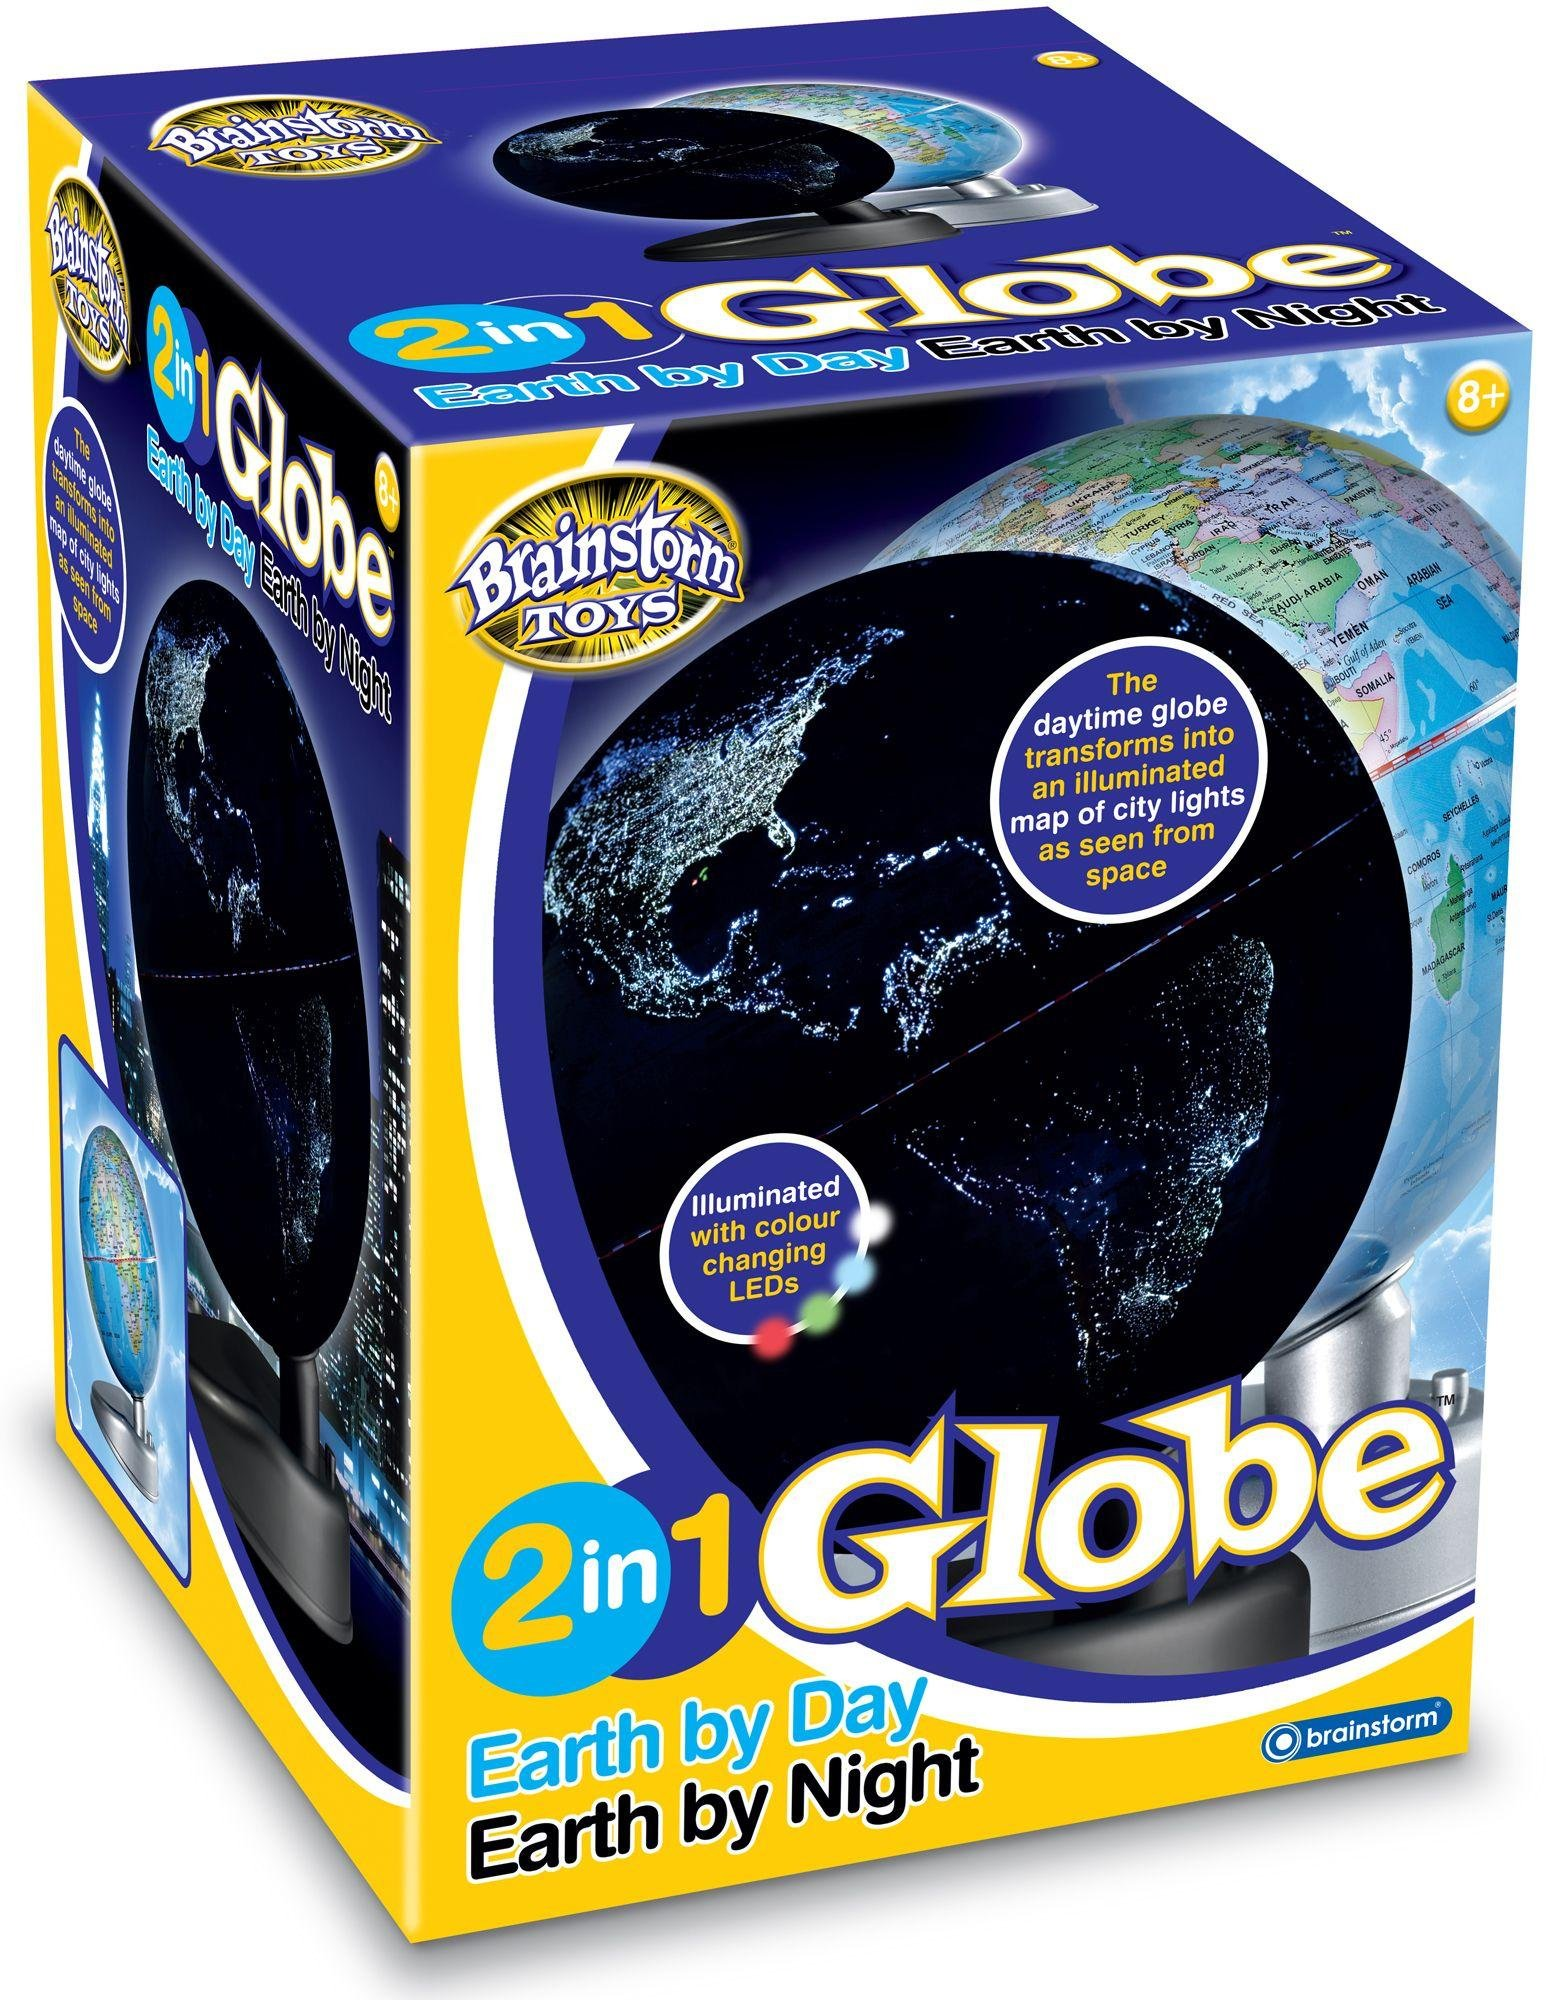 Image of Brainstorm Toys 2 in 1 Globe Earth by Day/Earth by Night.